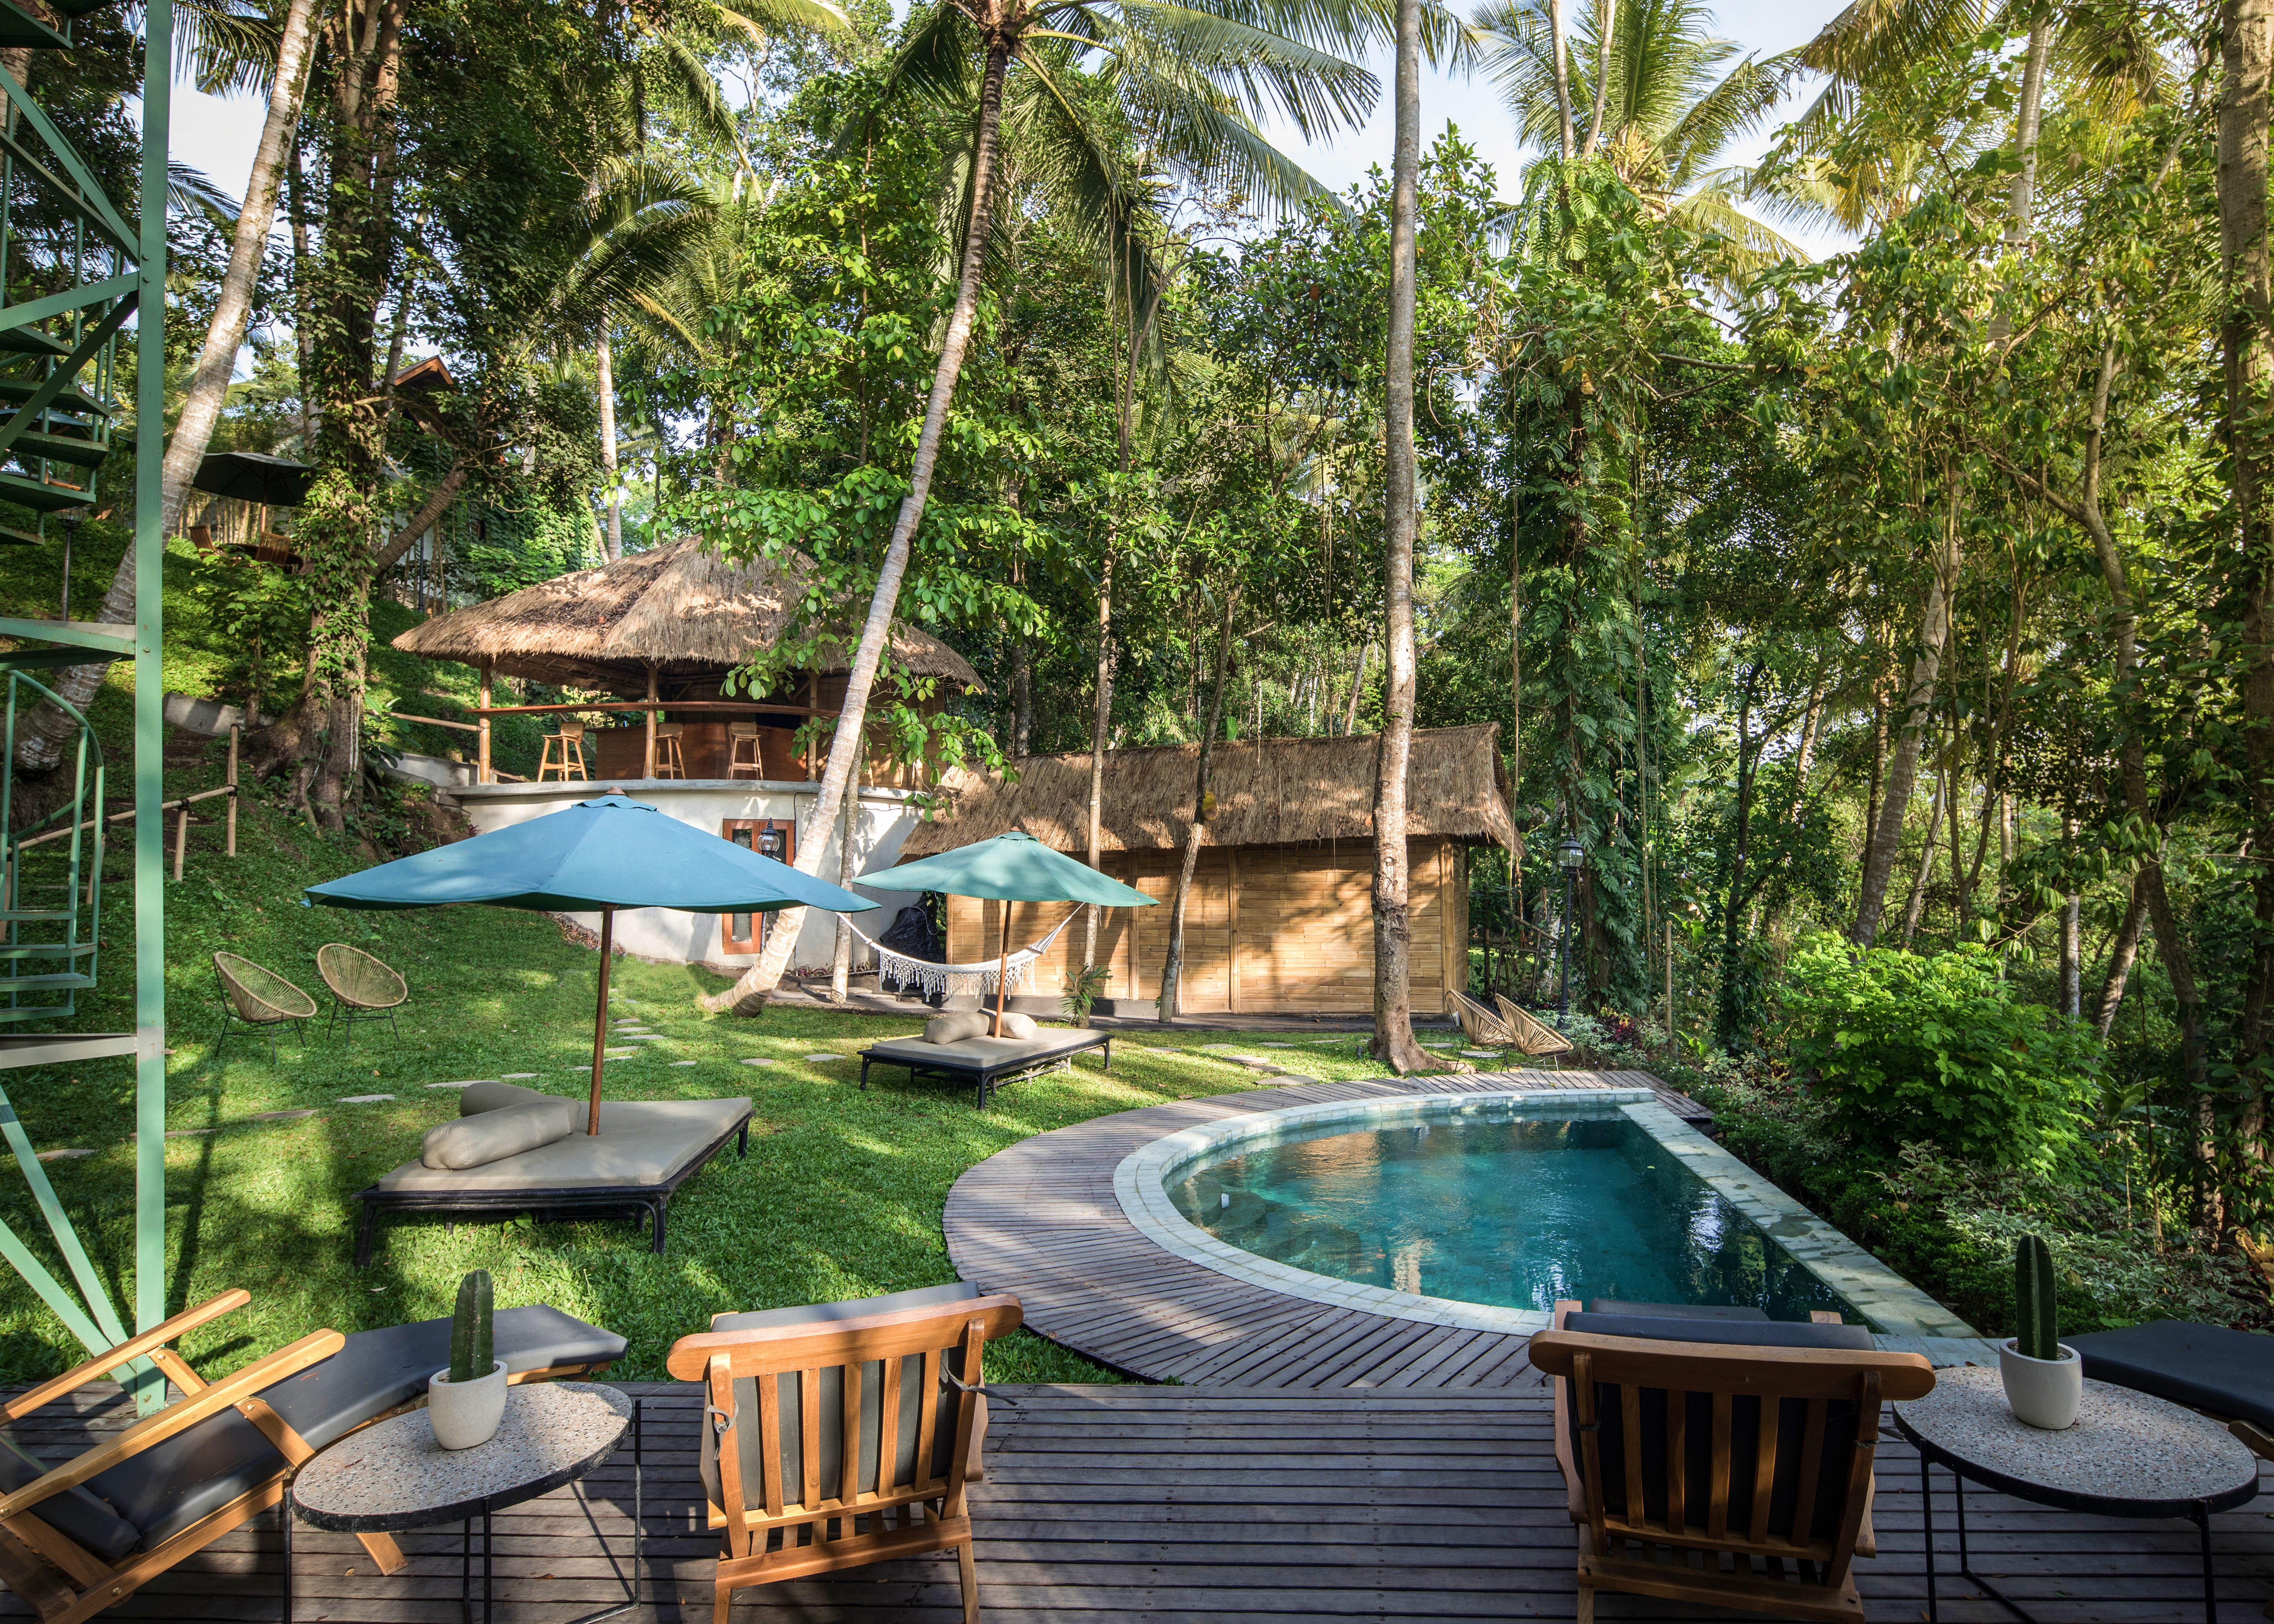 Small pool area and deck in a jungle eco resort